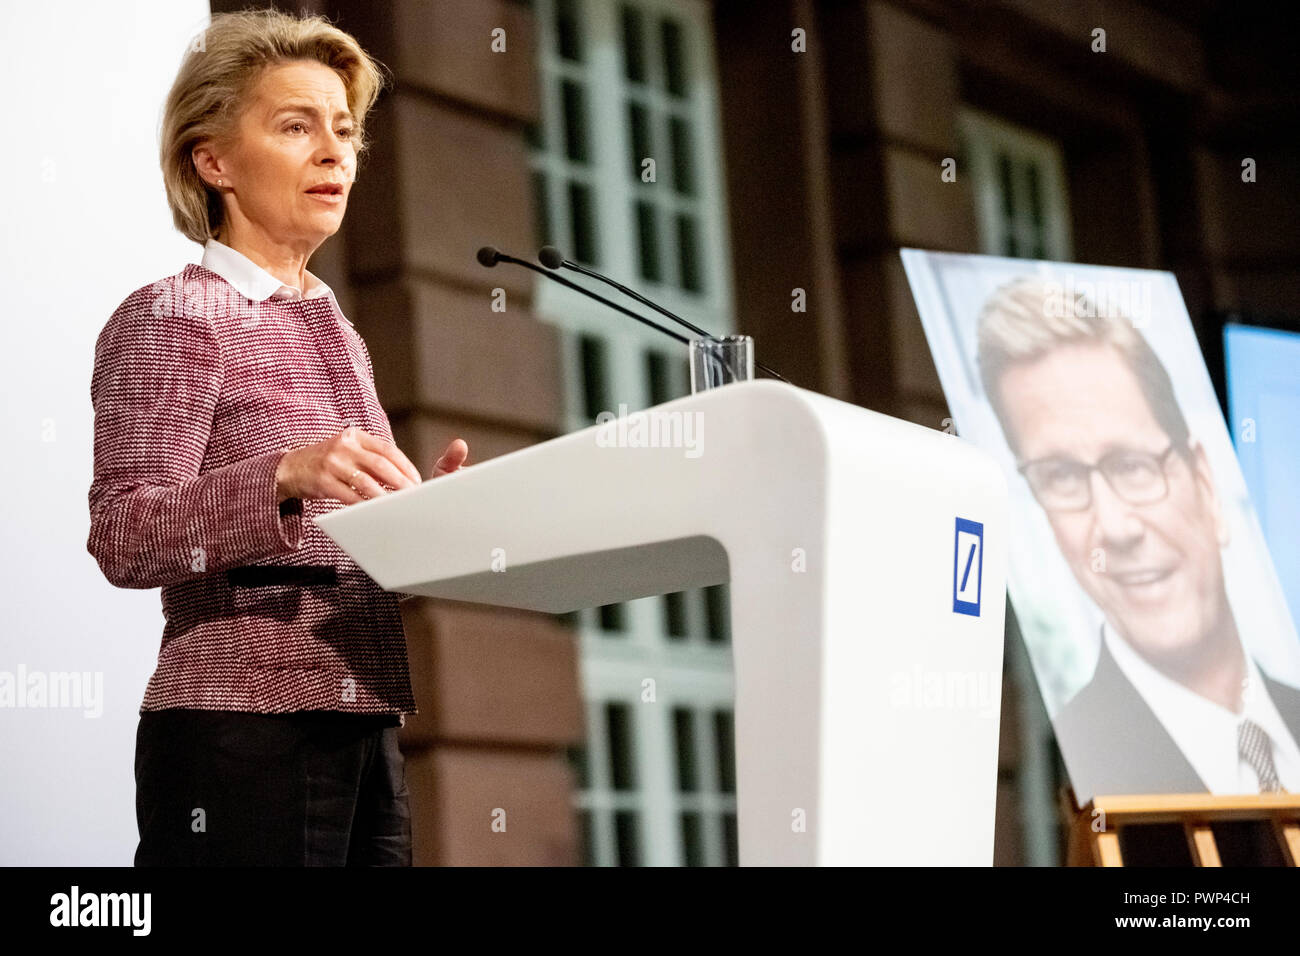 Berlin, Germany. 17th Oct, 2018. 17 October 2018, Germany, Berlin: Ursula von der Leyen (CDU), Federal Minister of Defence, speaks at the posthumous award ceremony of the Rathenau Prize 2018 to Guido Westerwelle. Westerwelle is posthumously honoured by the Walther Rathenau Institute, Foundation for International Politics, 'for his work in the sense of a peaceful world order based on international understanding'. Credit: Christoph Soeder/dpa/Alamy Live News - Stock Image